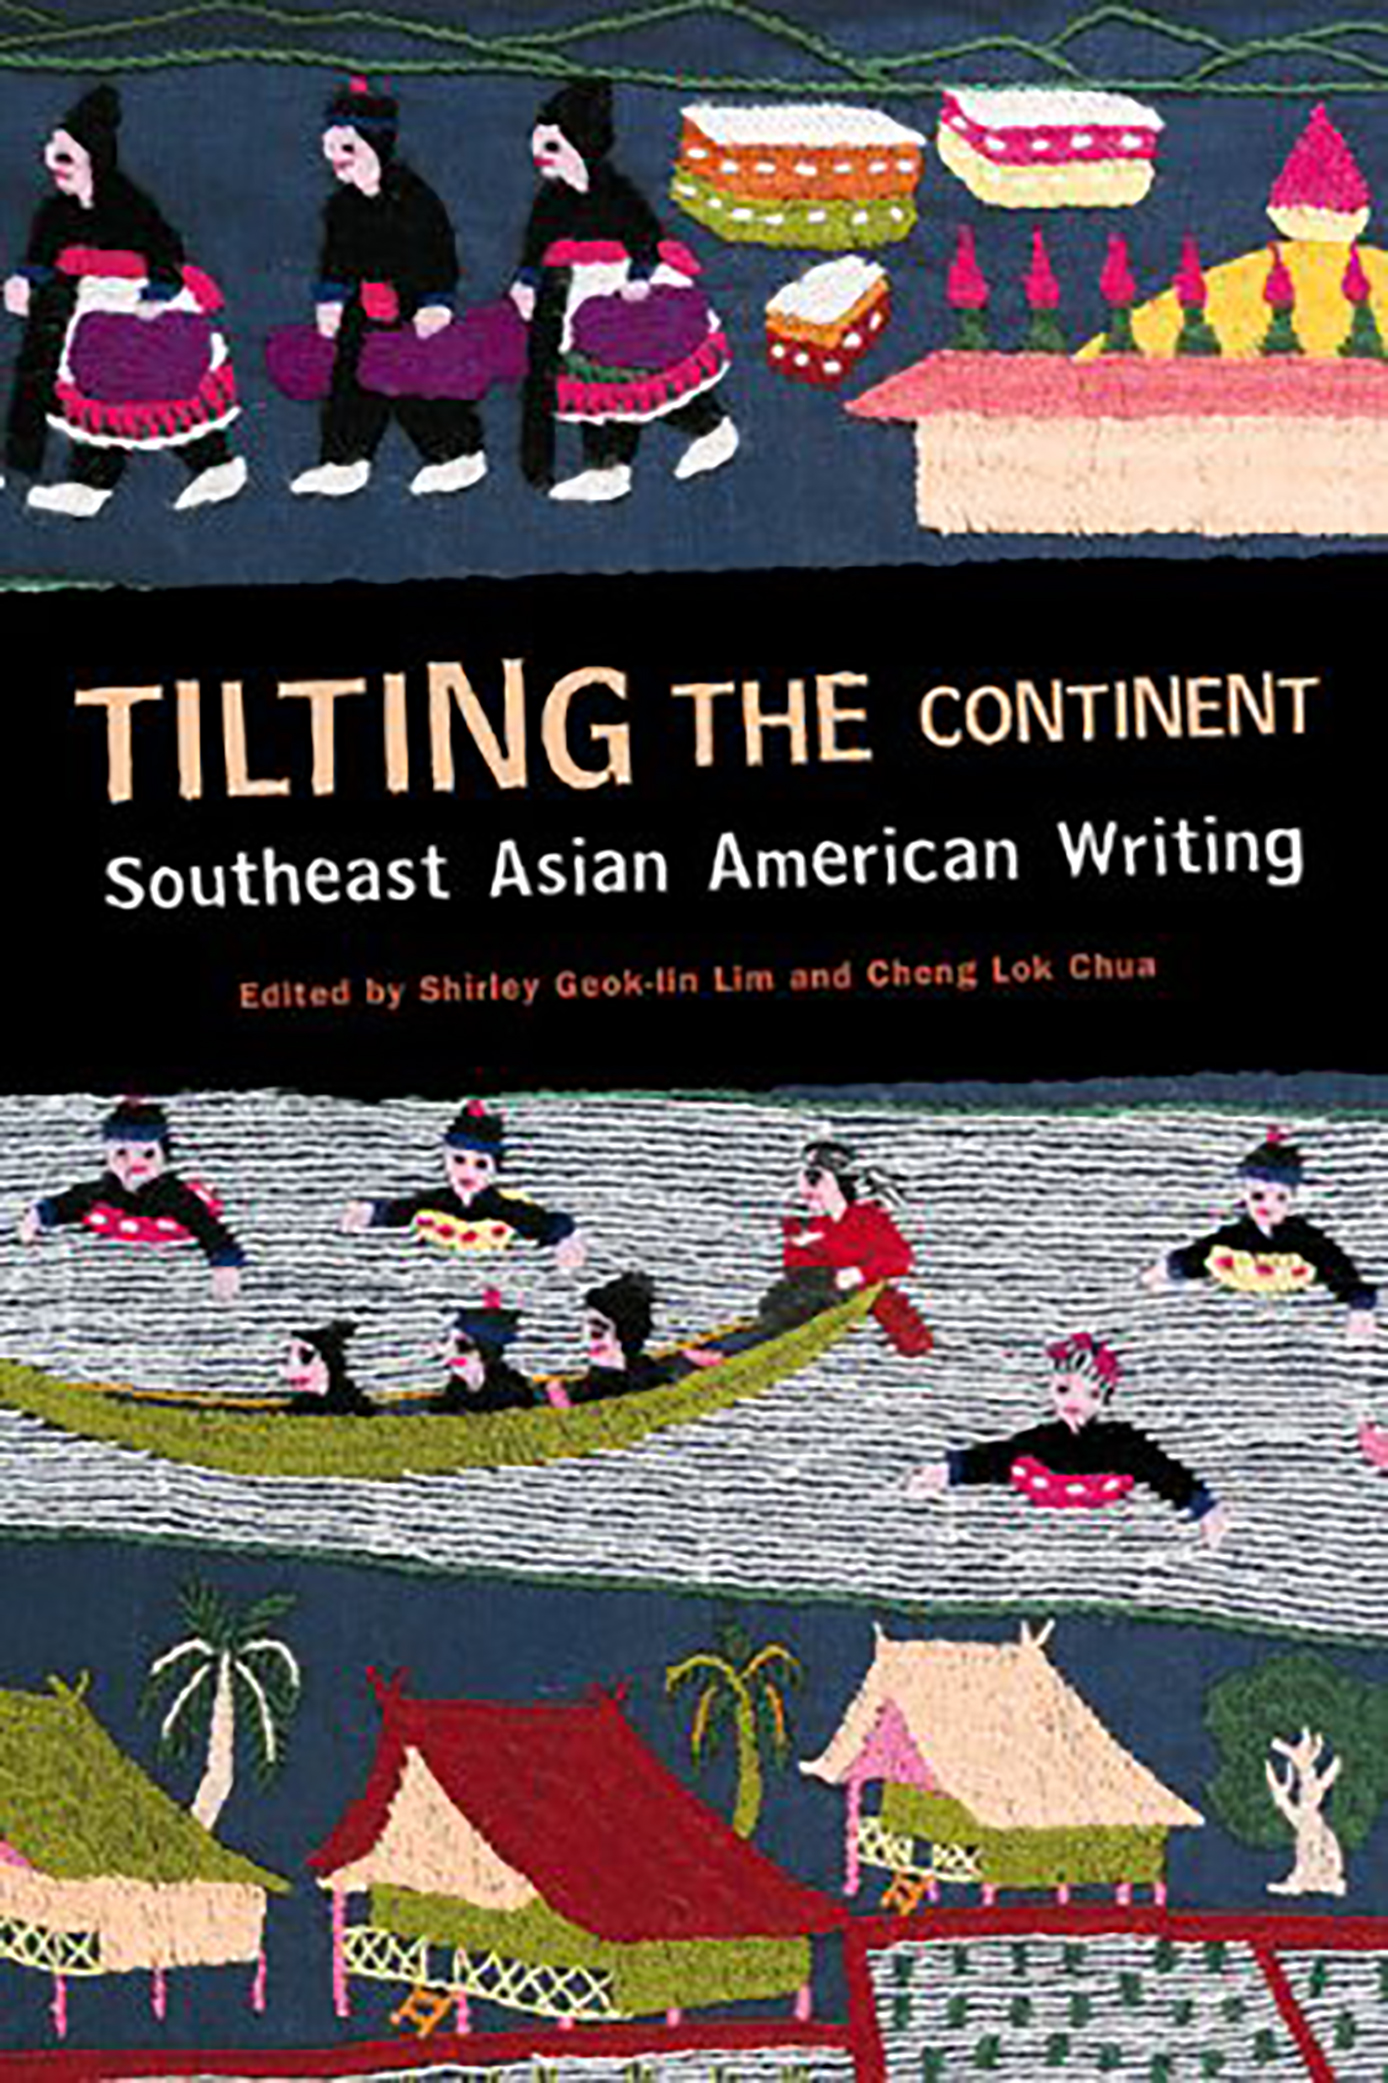 TILTING THE CONTINENT: SOUTHEAST ASIAN AMERICAN WRITING